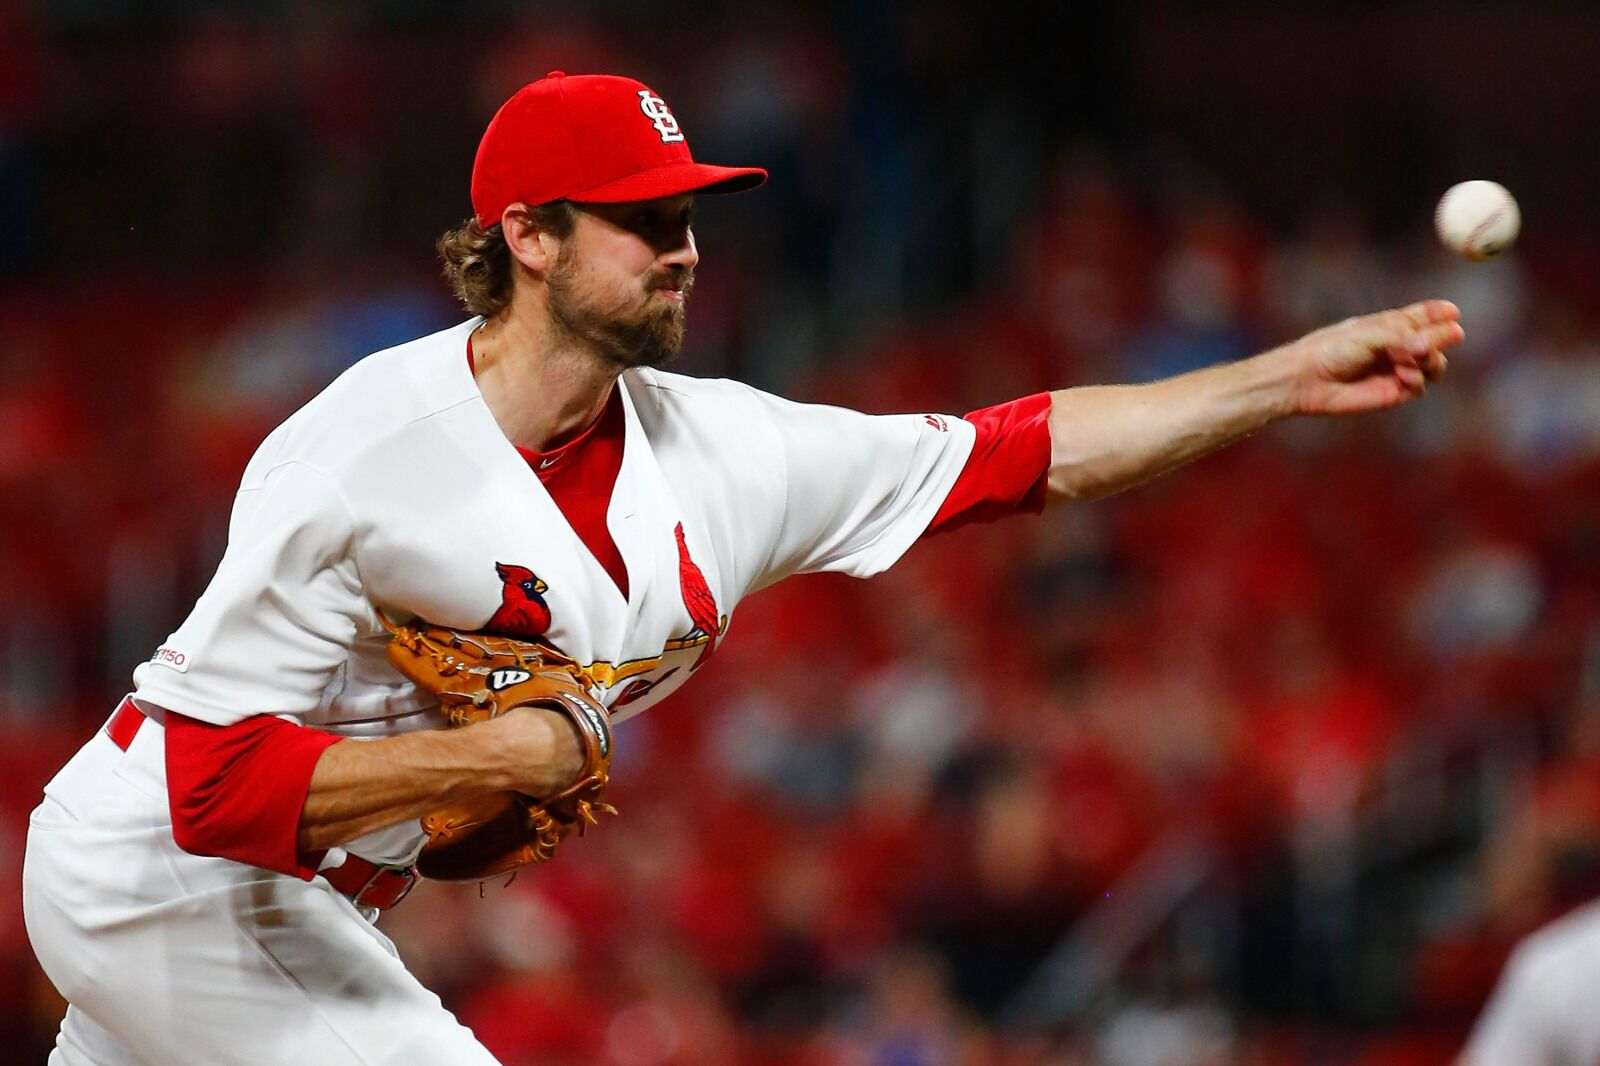 St. Louis Cardinals: Andrew Miller will be big in the playoffs